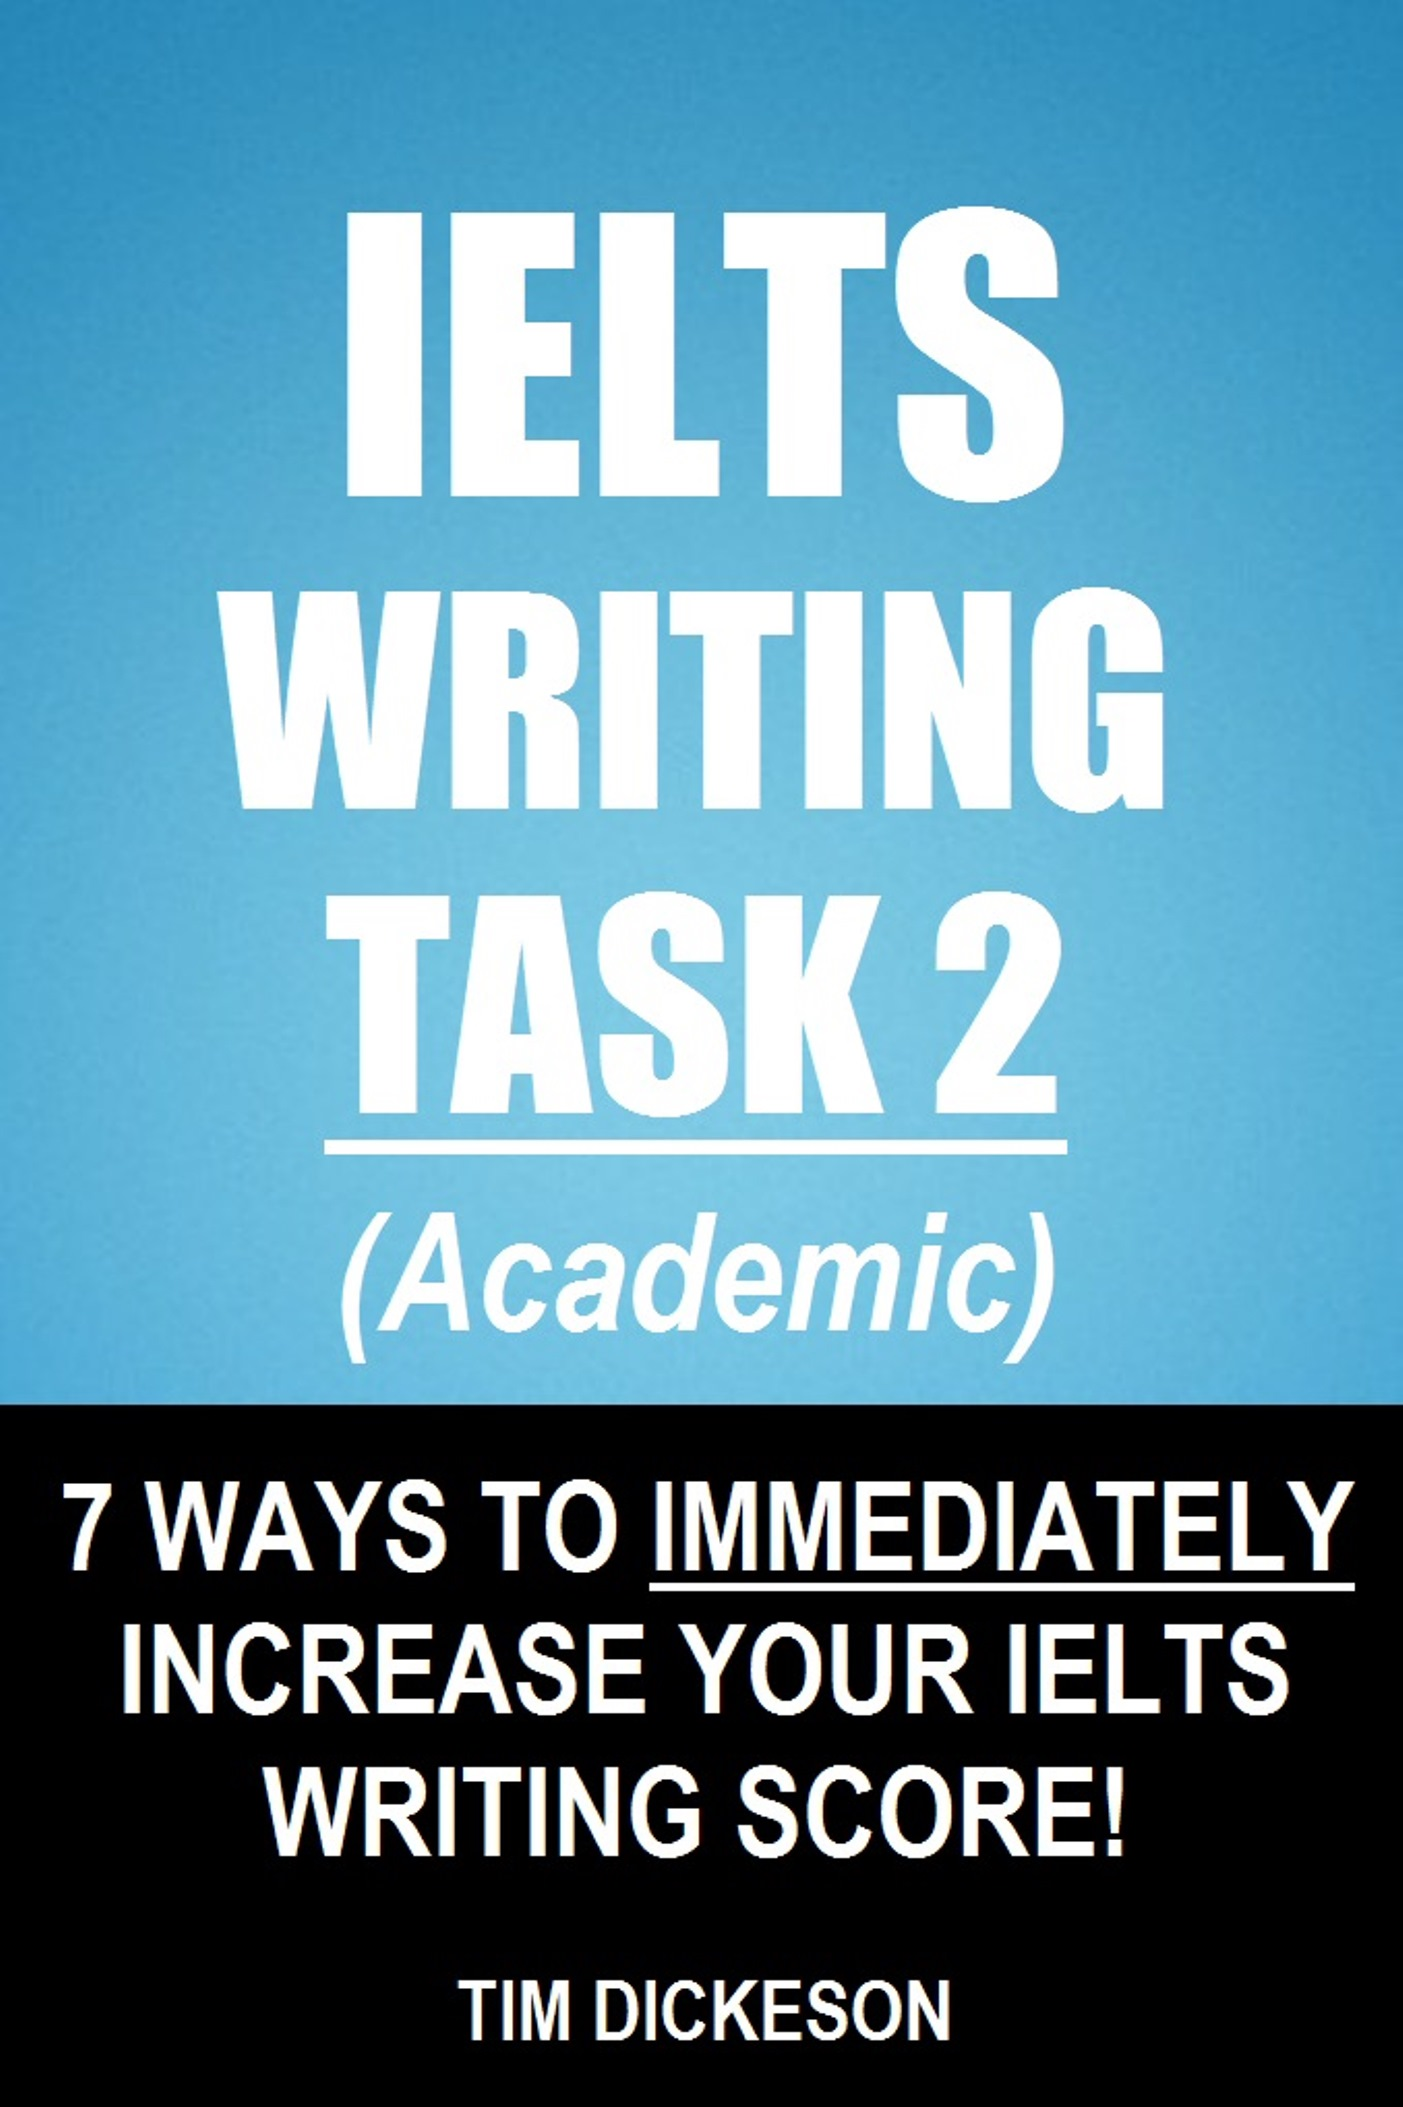 """academic writing ielts task 2 In this ielts writing task 2 lesson, you will plan an essay on the """"university subjects"""" topic, listen to an ielts teacher's ideas for a plan, and read an ielts."""